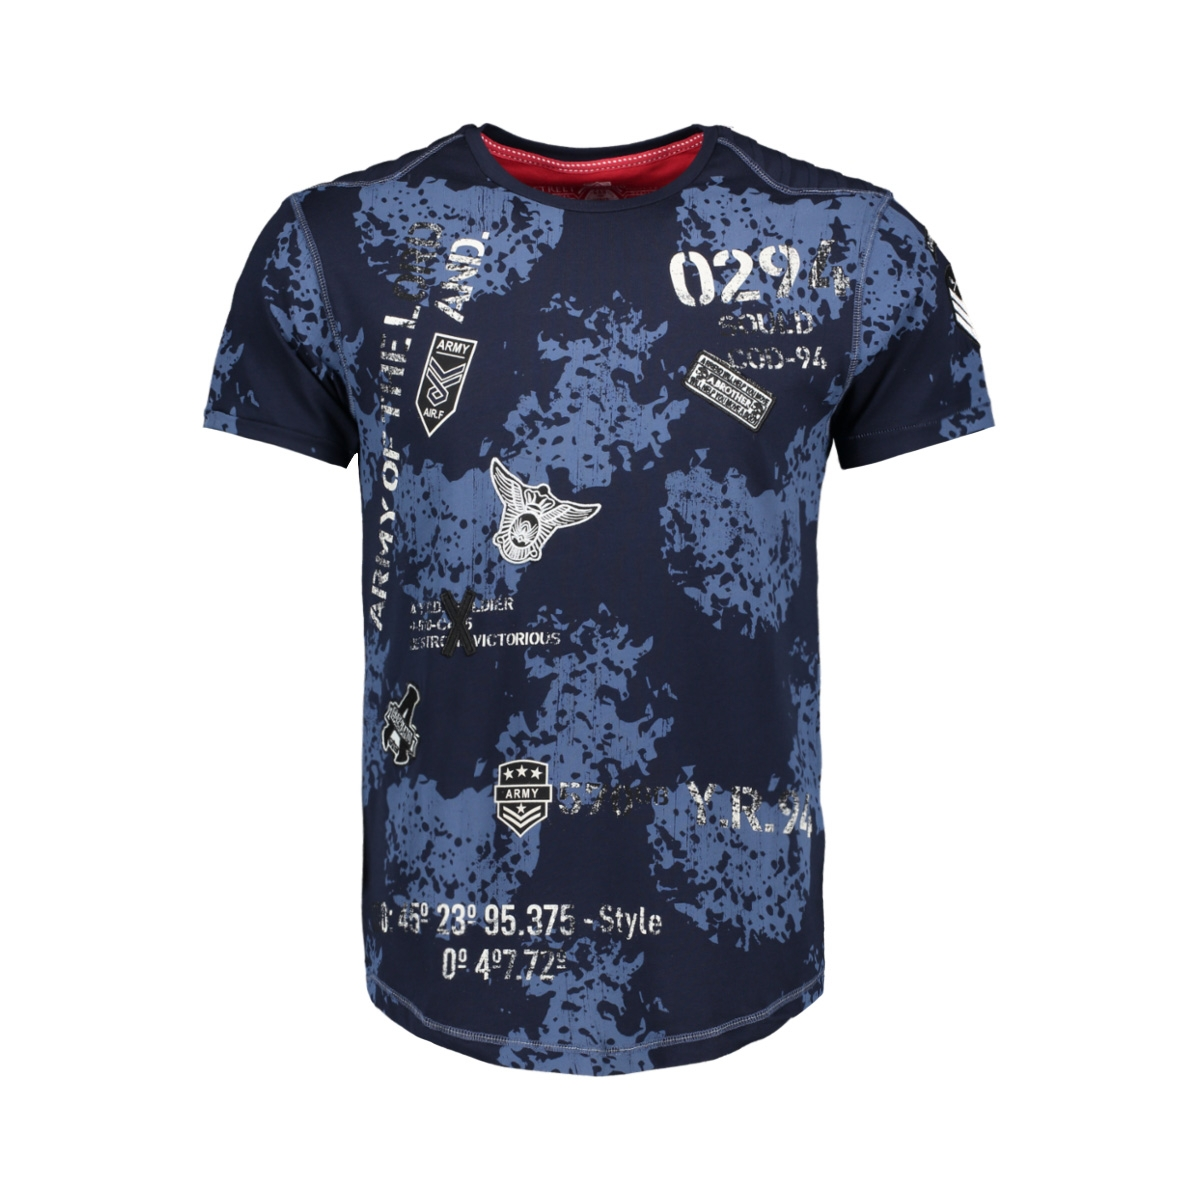 t shirt 13829 gabbiano t-shirt navy